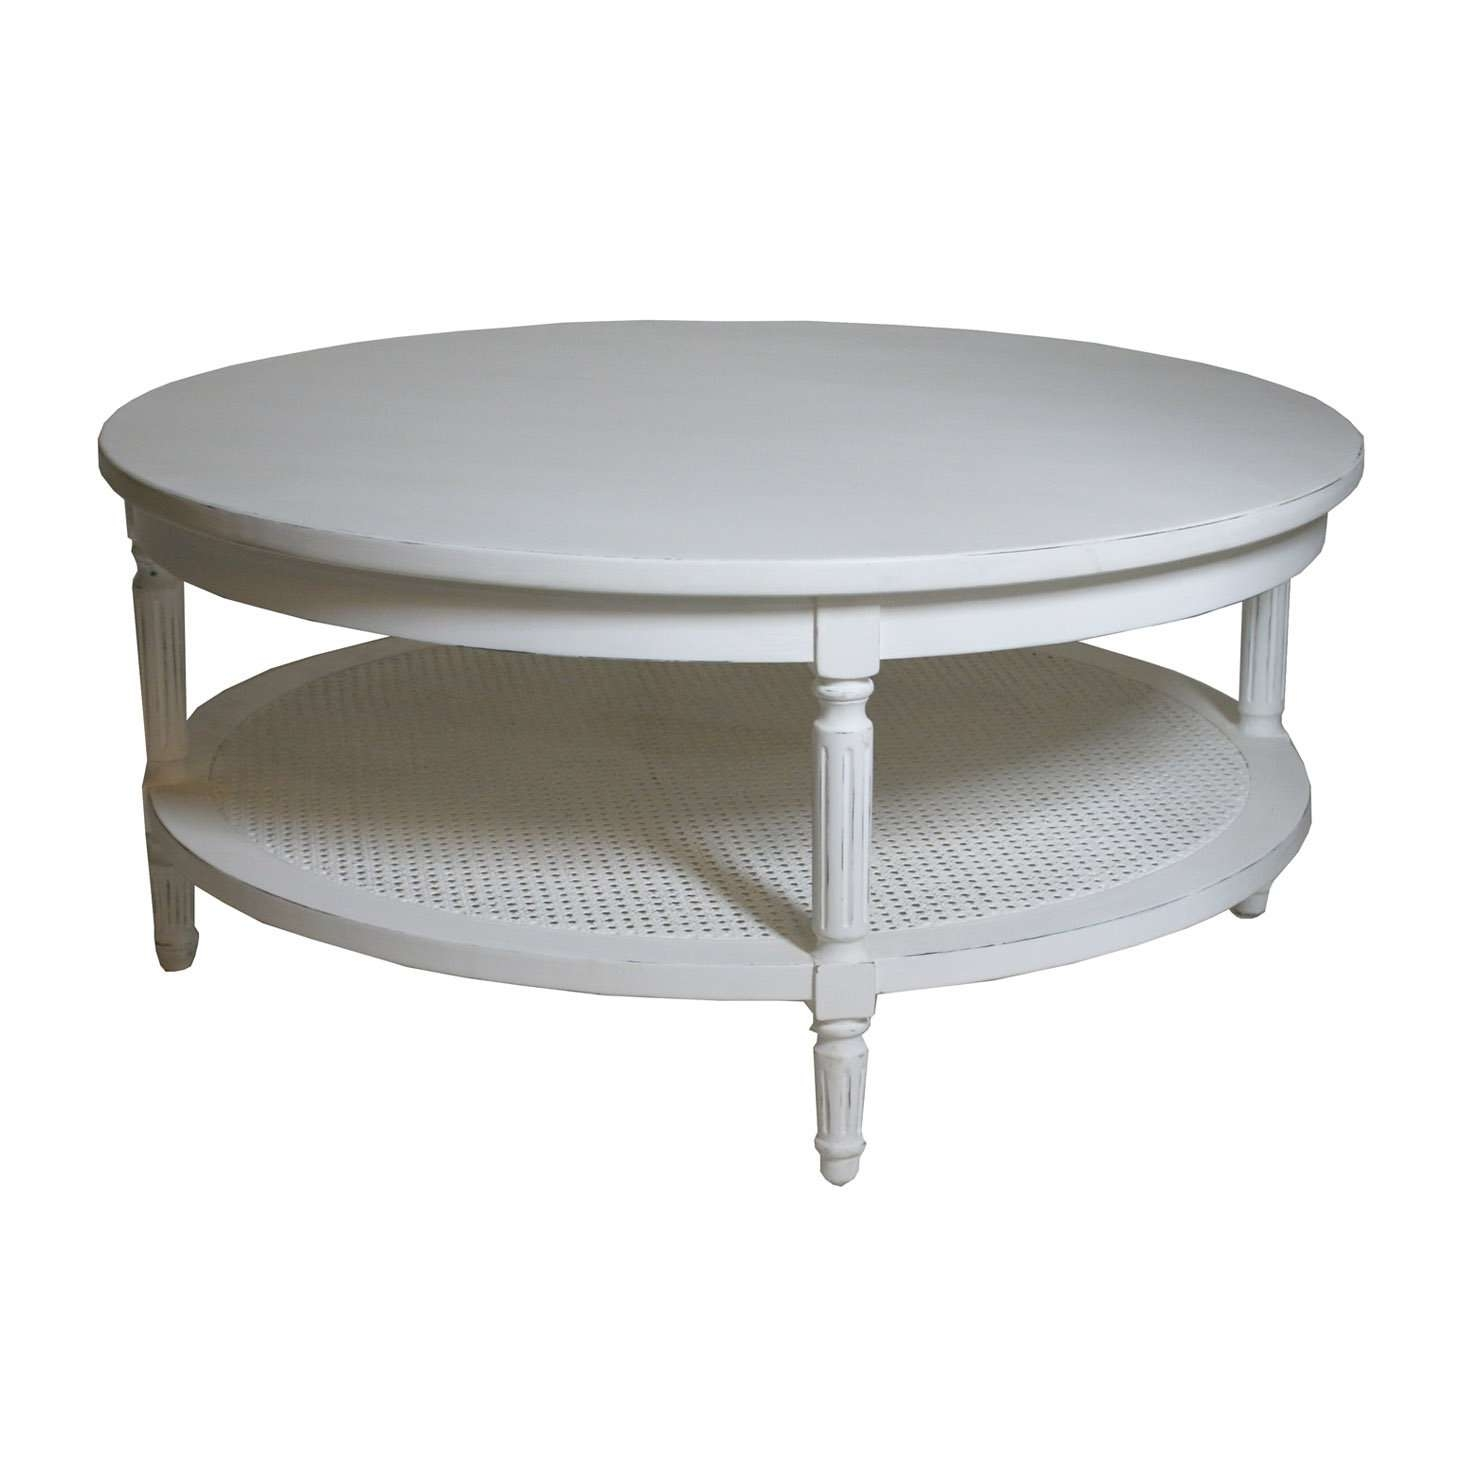 Coffee Tables : Antique Round Coffee Table How To Get Profit With In Latest Oversized Round Coffee Tables (View 8 of 20)